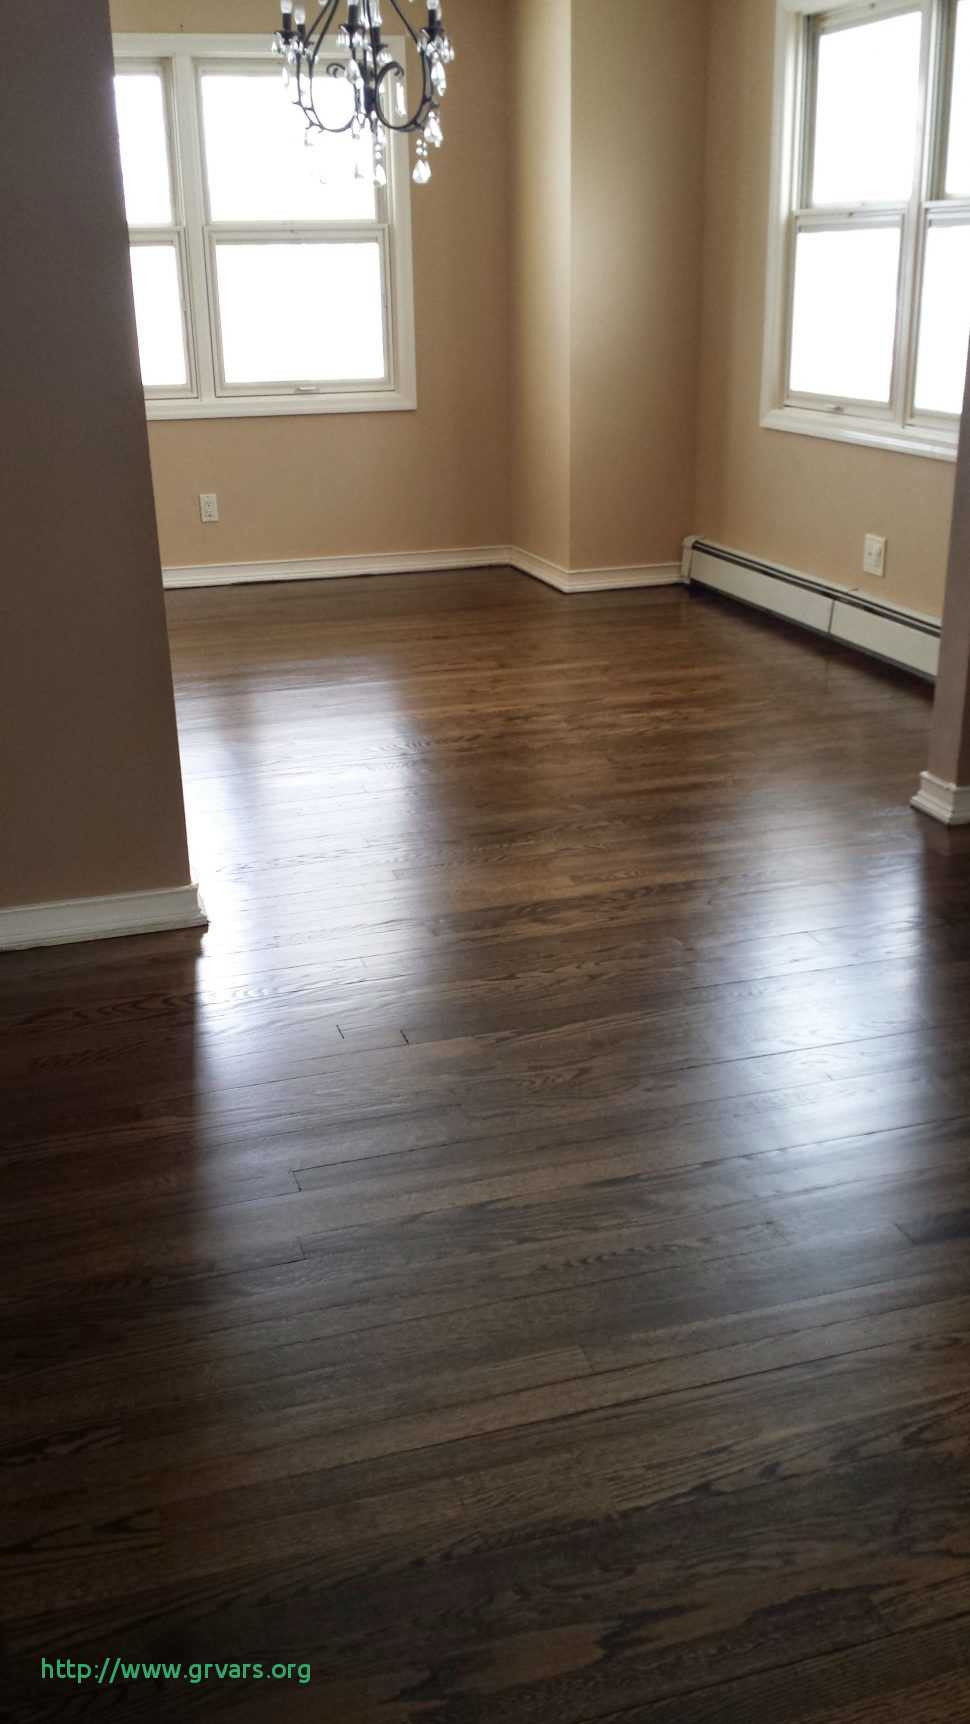 how much does sanding hardwood floors cost of how much does it cost to have hardwood floors refinished frais within how much does it cost to have hardwood floors refinished frais amusing refinishingod floors diy network refinish parquet without